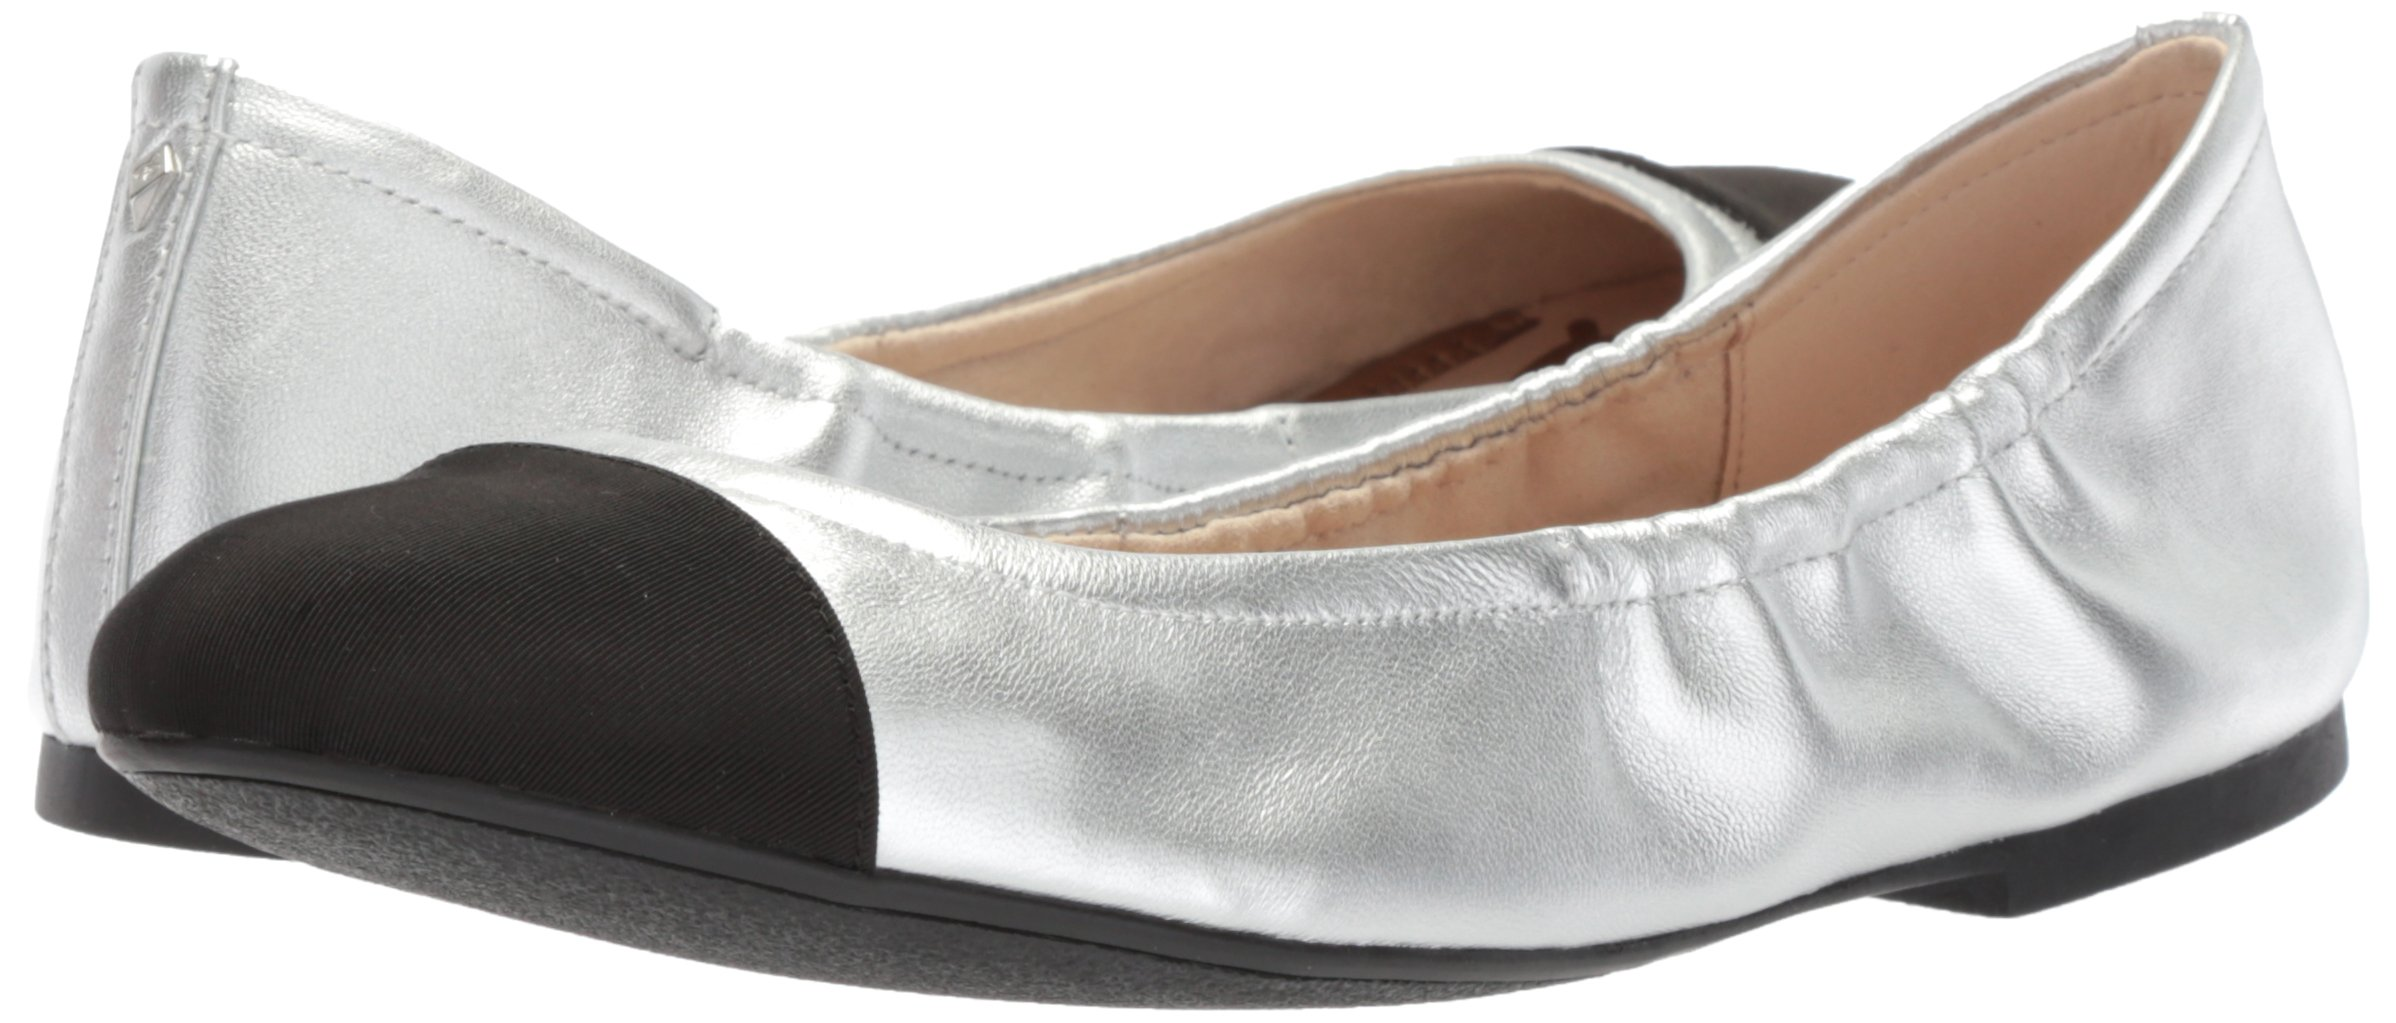 Sam Edelman Women's fraley Ballet Flat, Soft Silver/Black, 7 Medium US by Sam Edelman (Image #6)